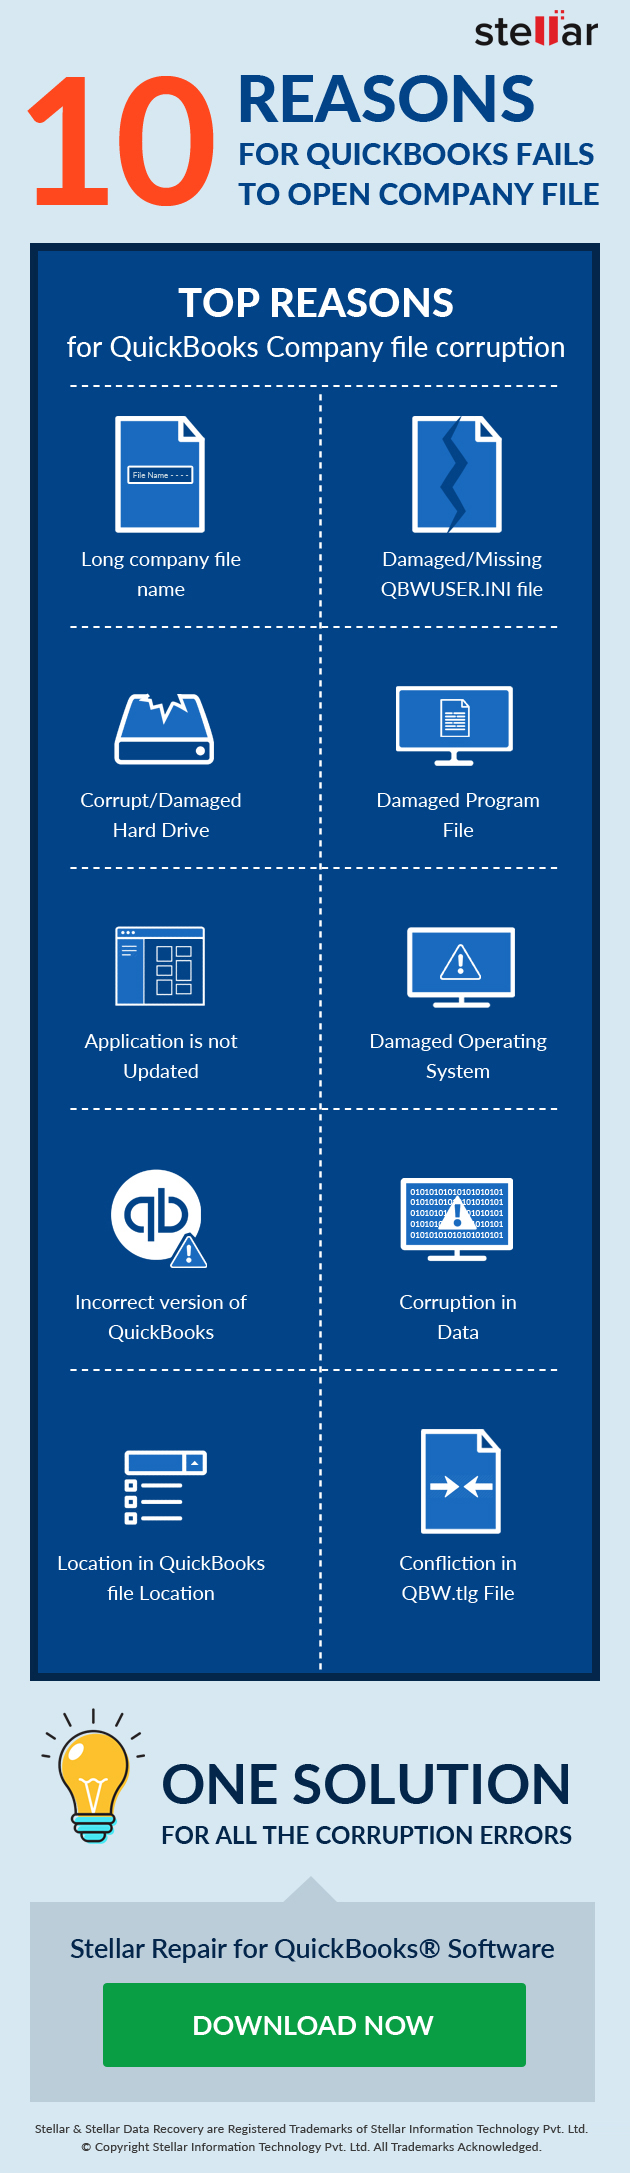 Top 10 reasons for QuickBooks won't open company file